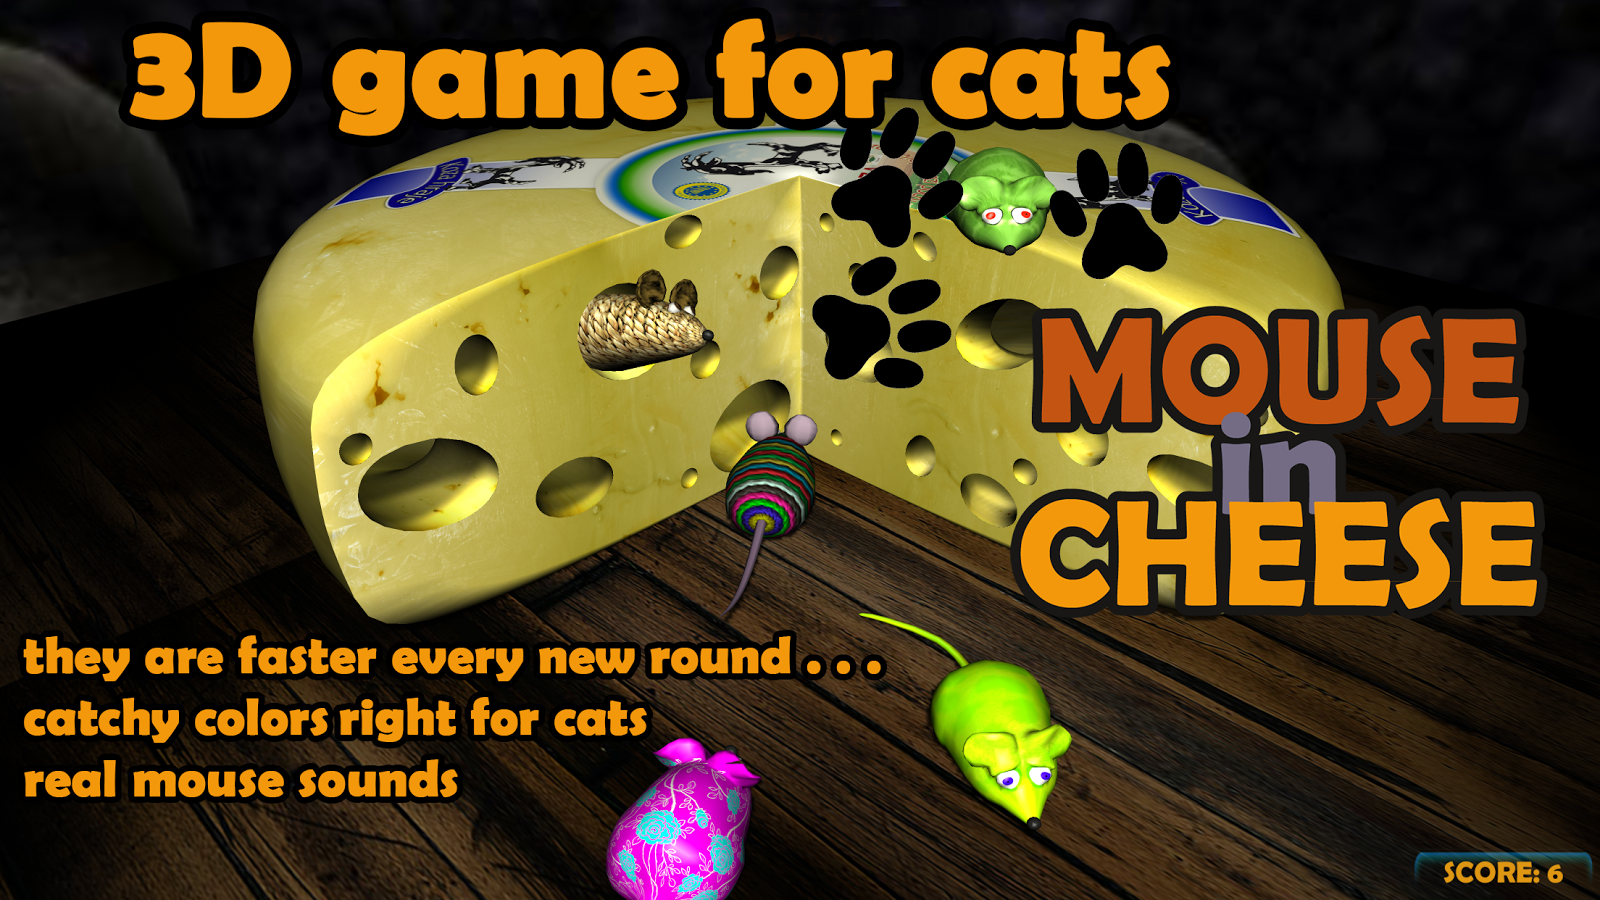 Mouse in Cheese: 3D game for cats- screenshot